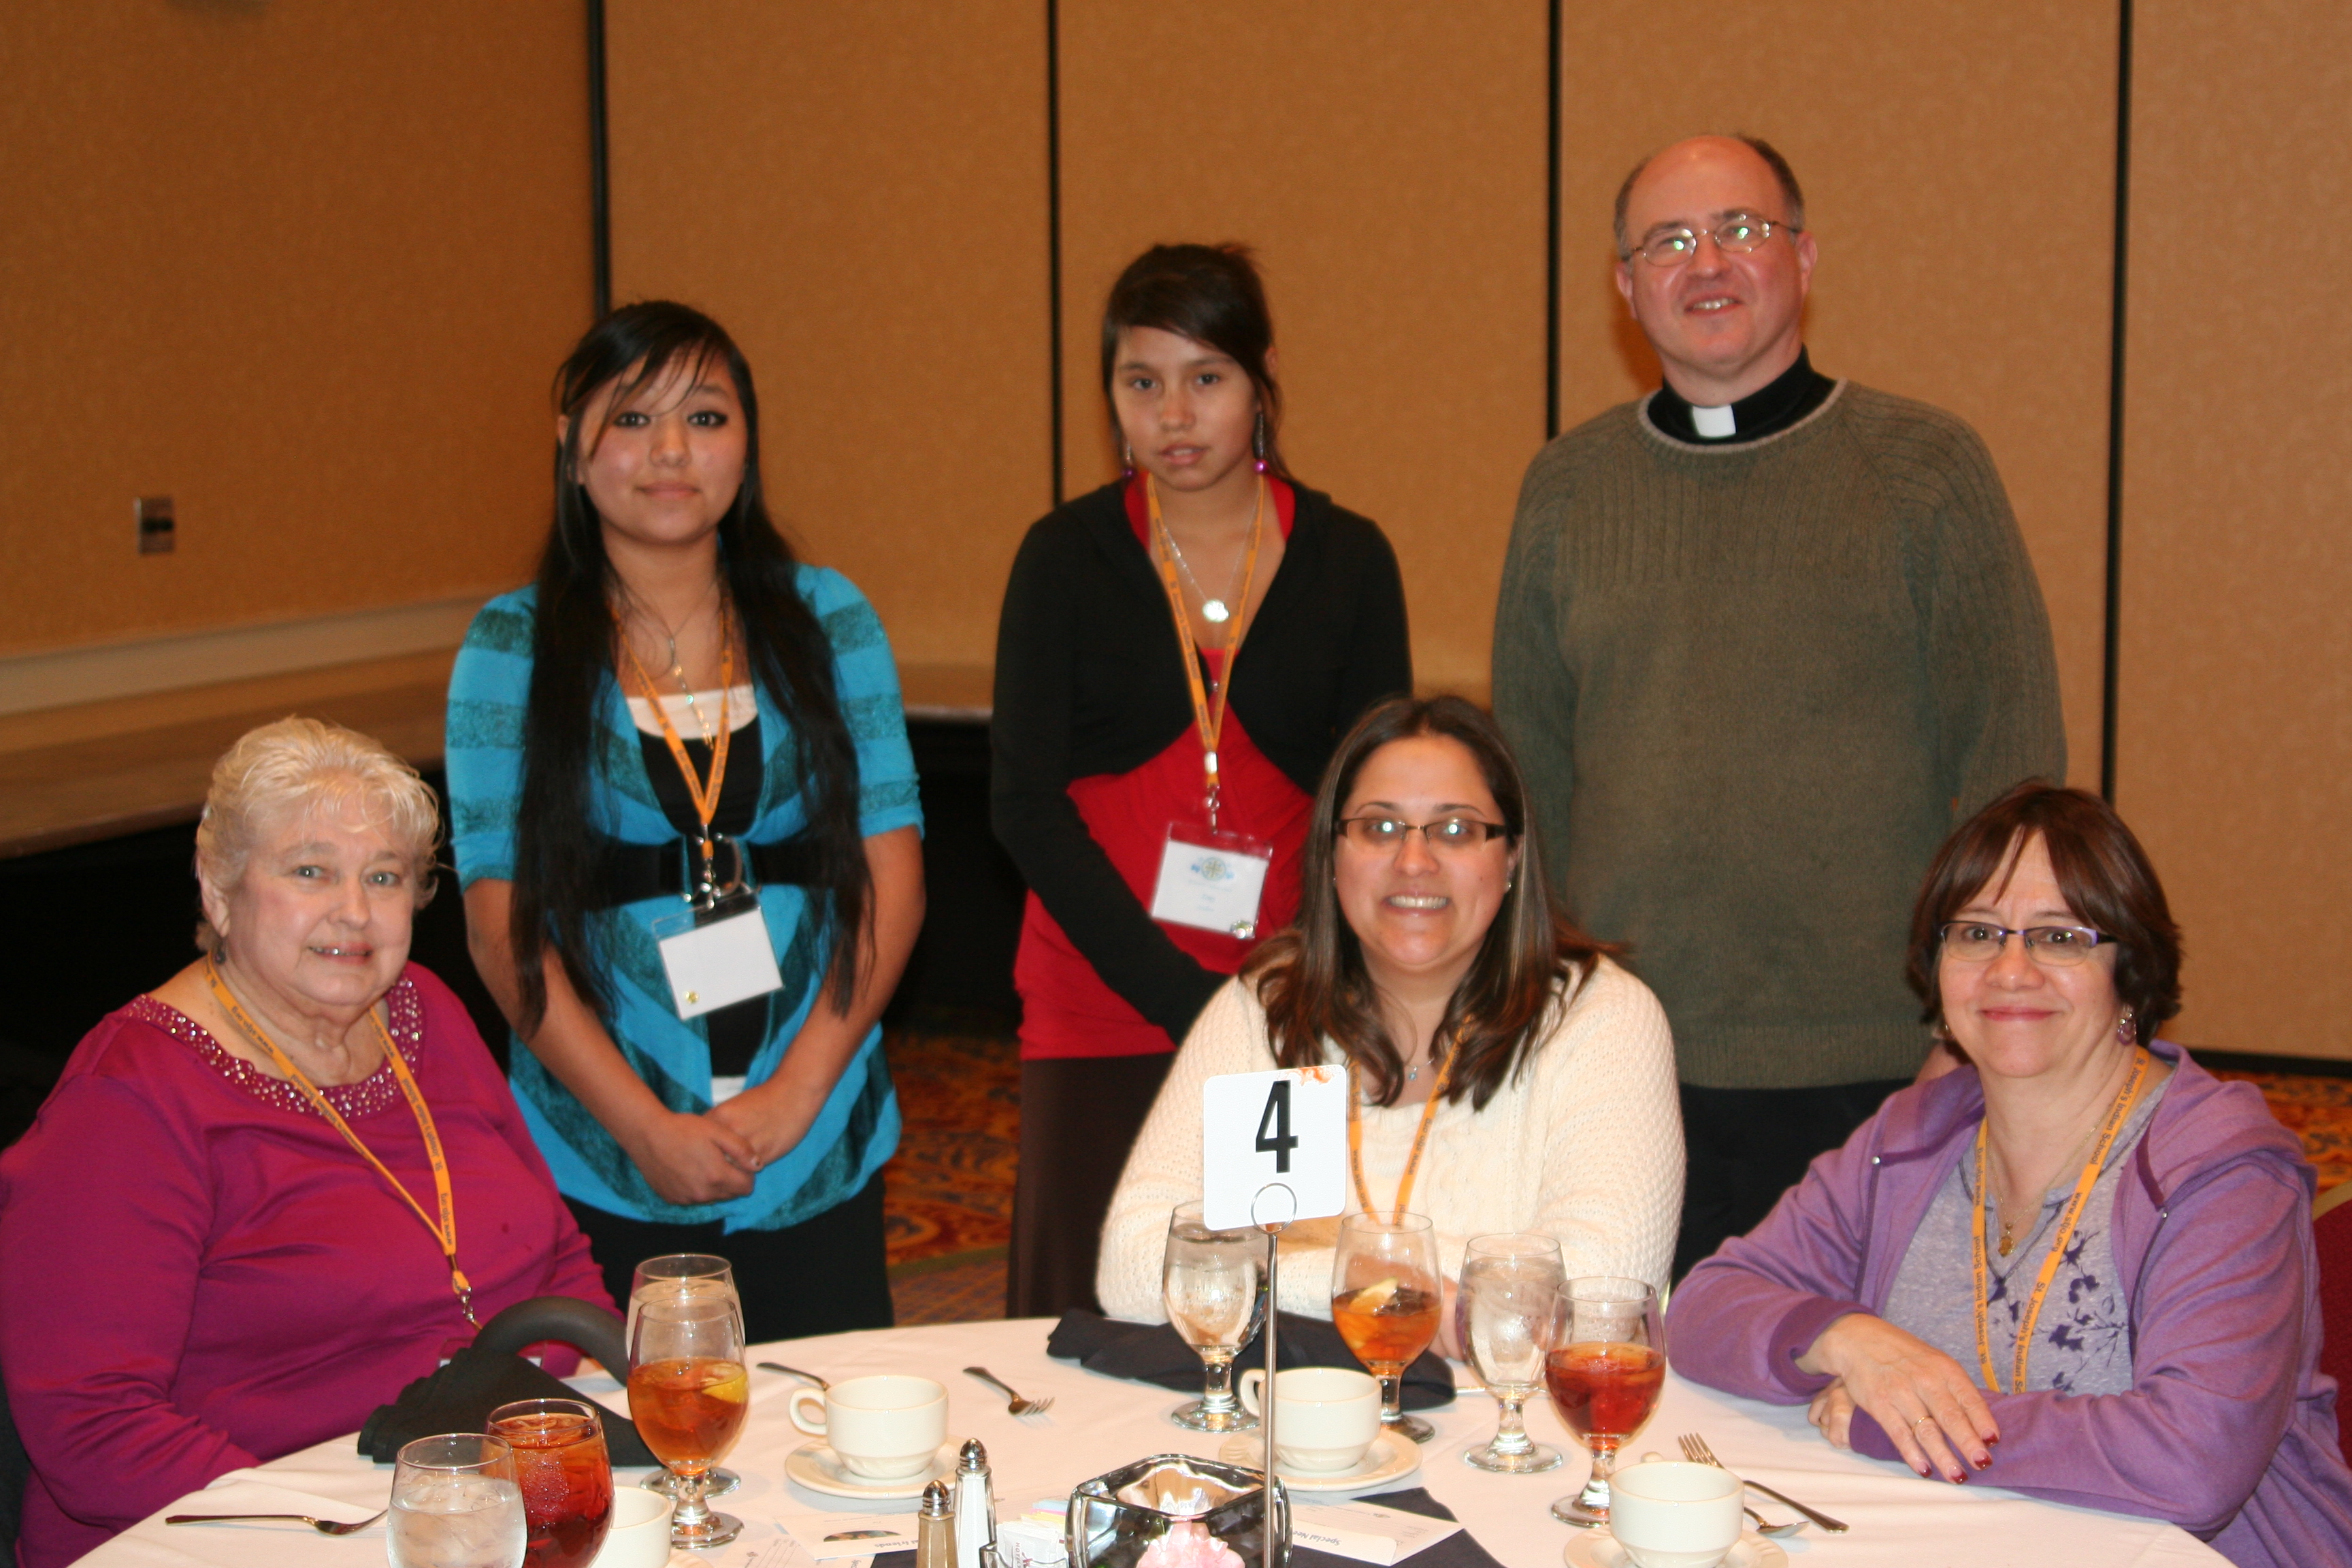 Mia, Zoey, Fr. Steve and friends at the California donor luncheon.